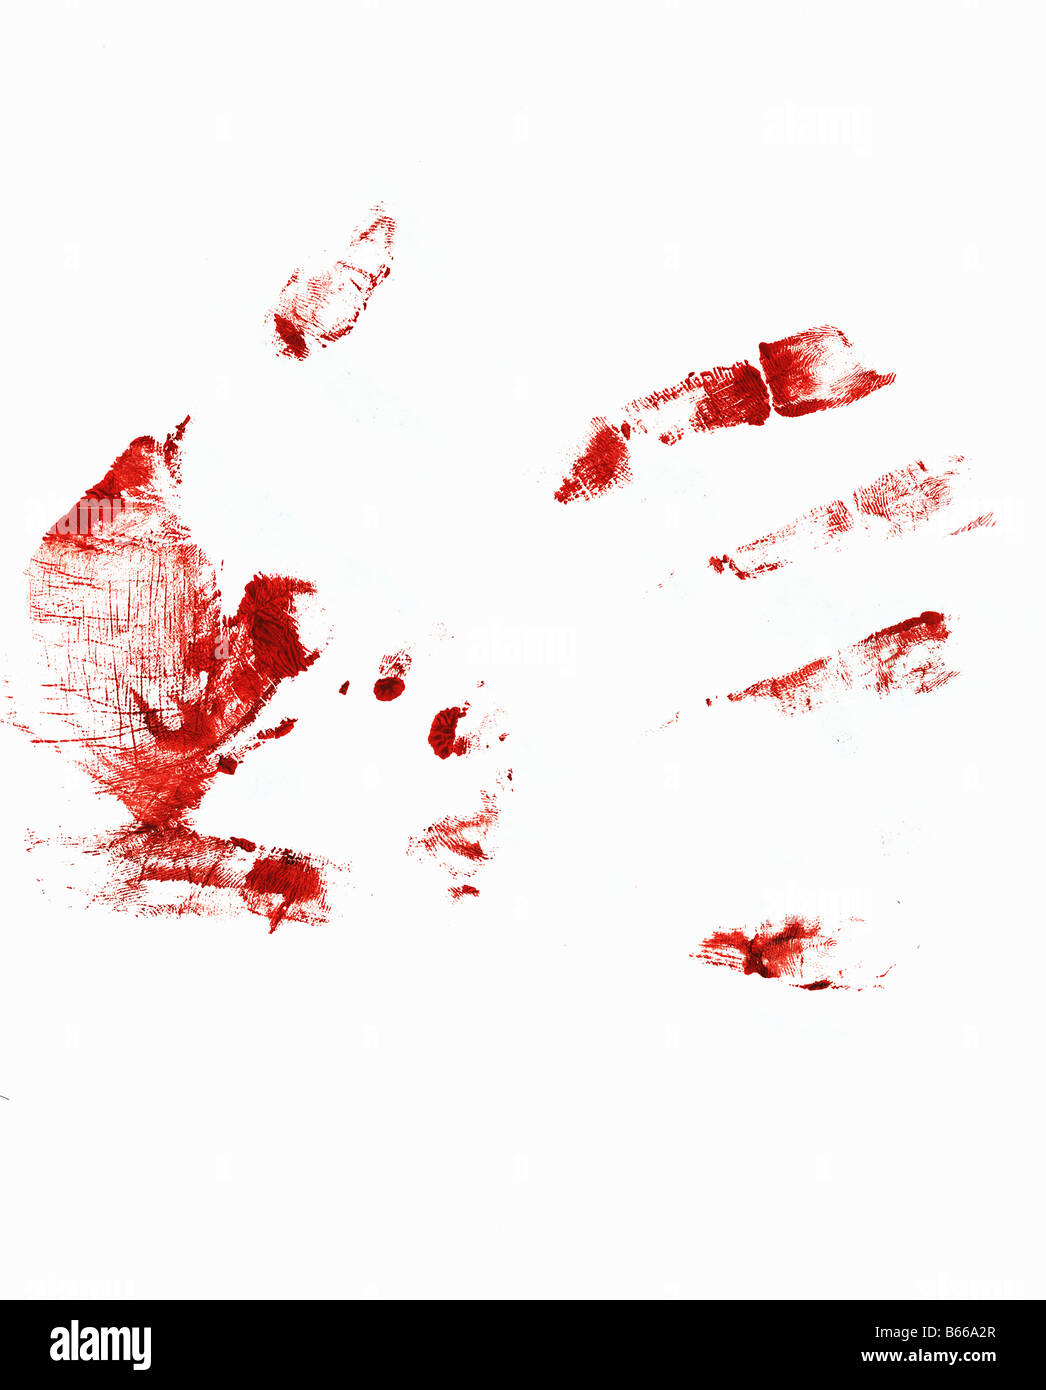 Bloody hand print on a white background - Stock Image